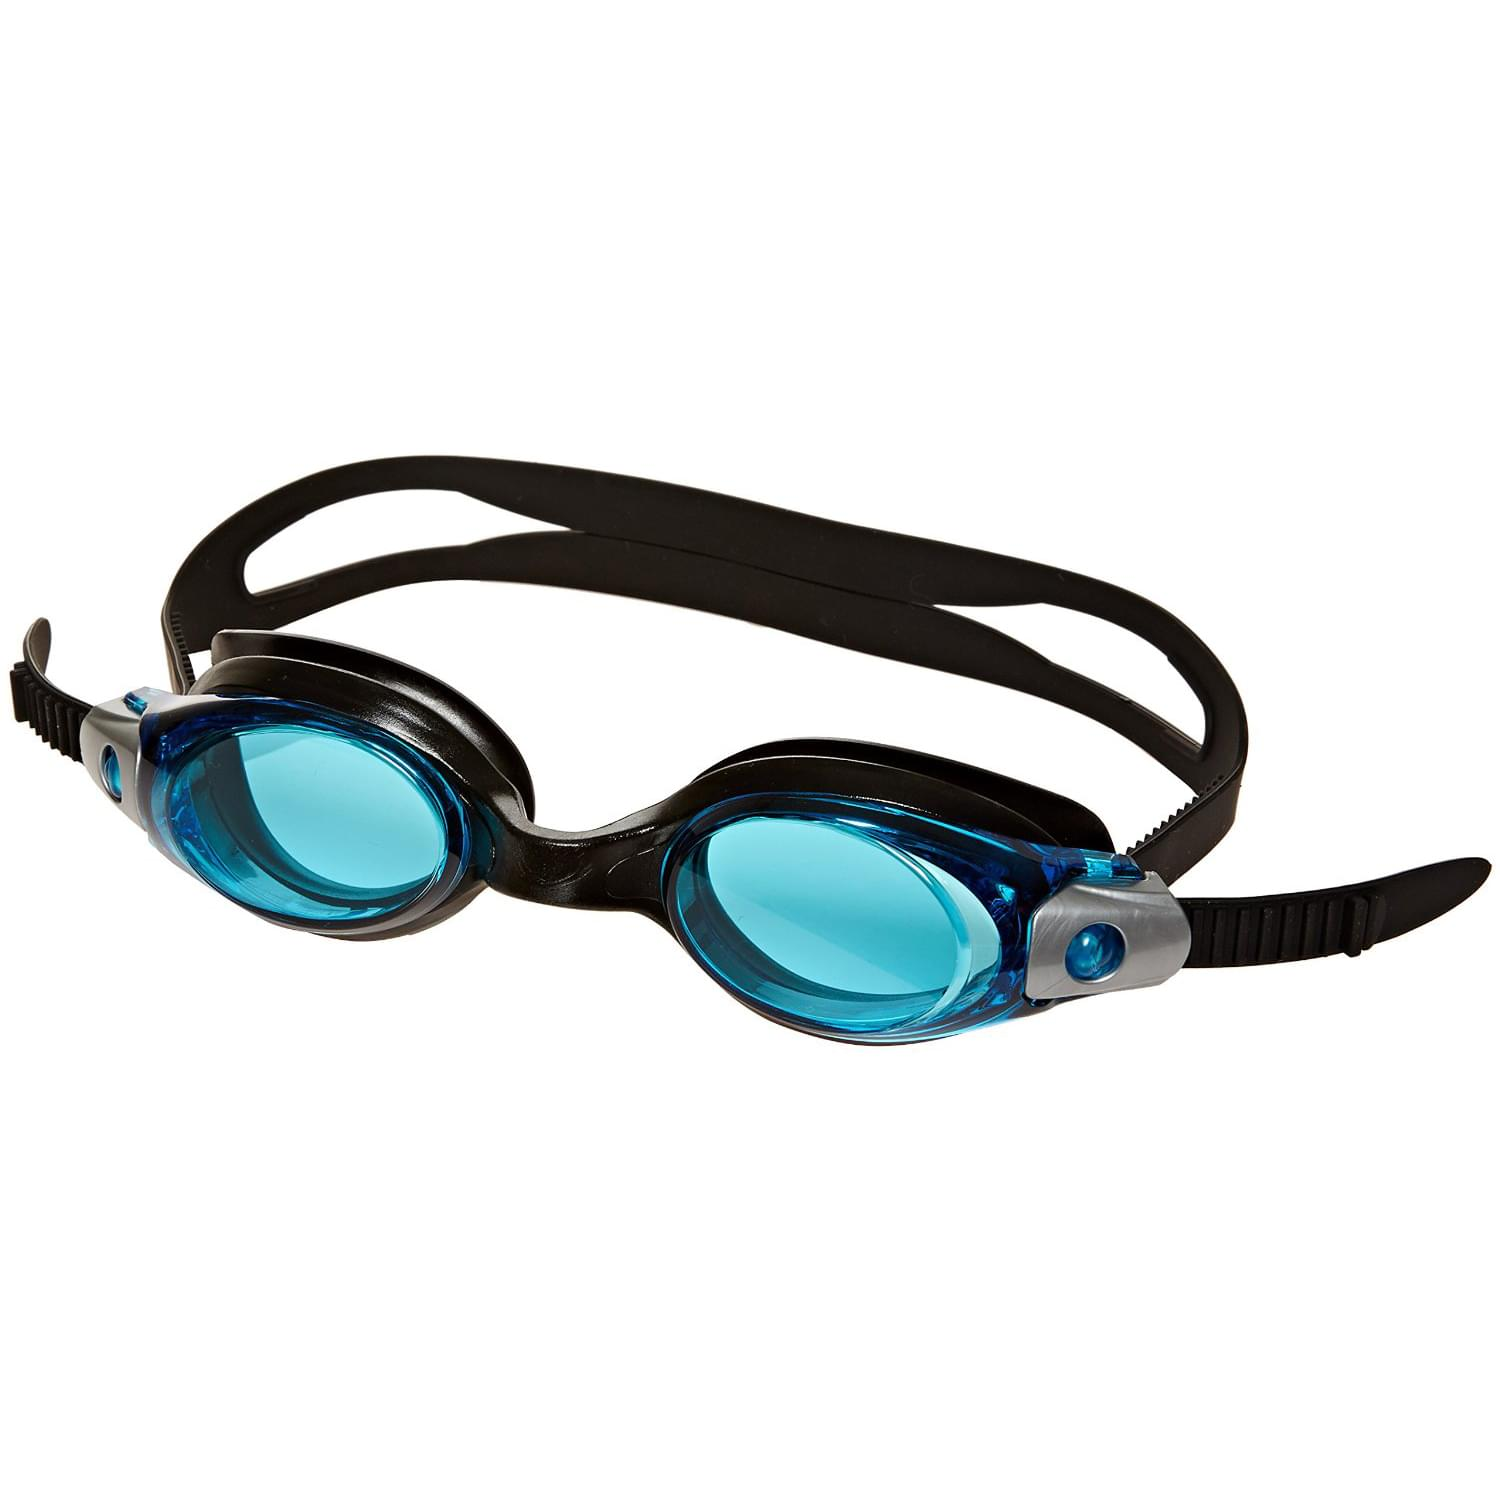 Race One Sprinter Swim Goggles